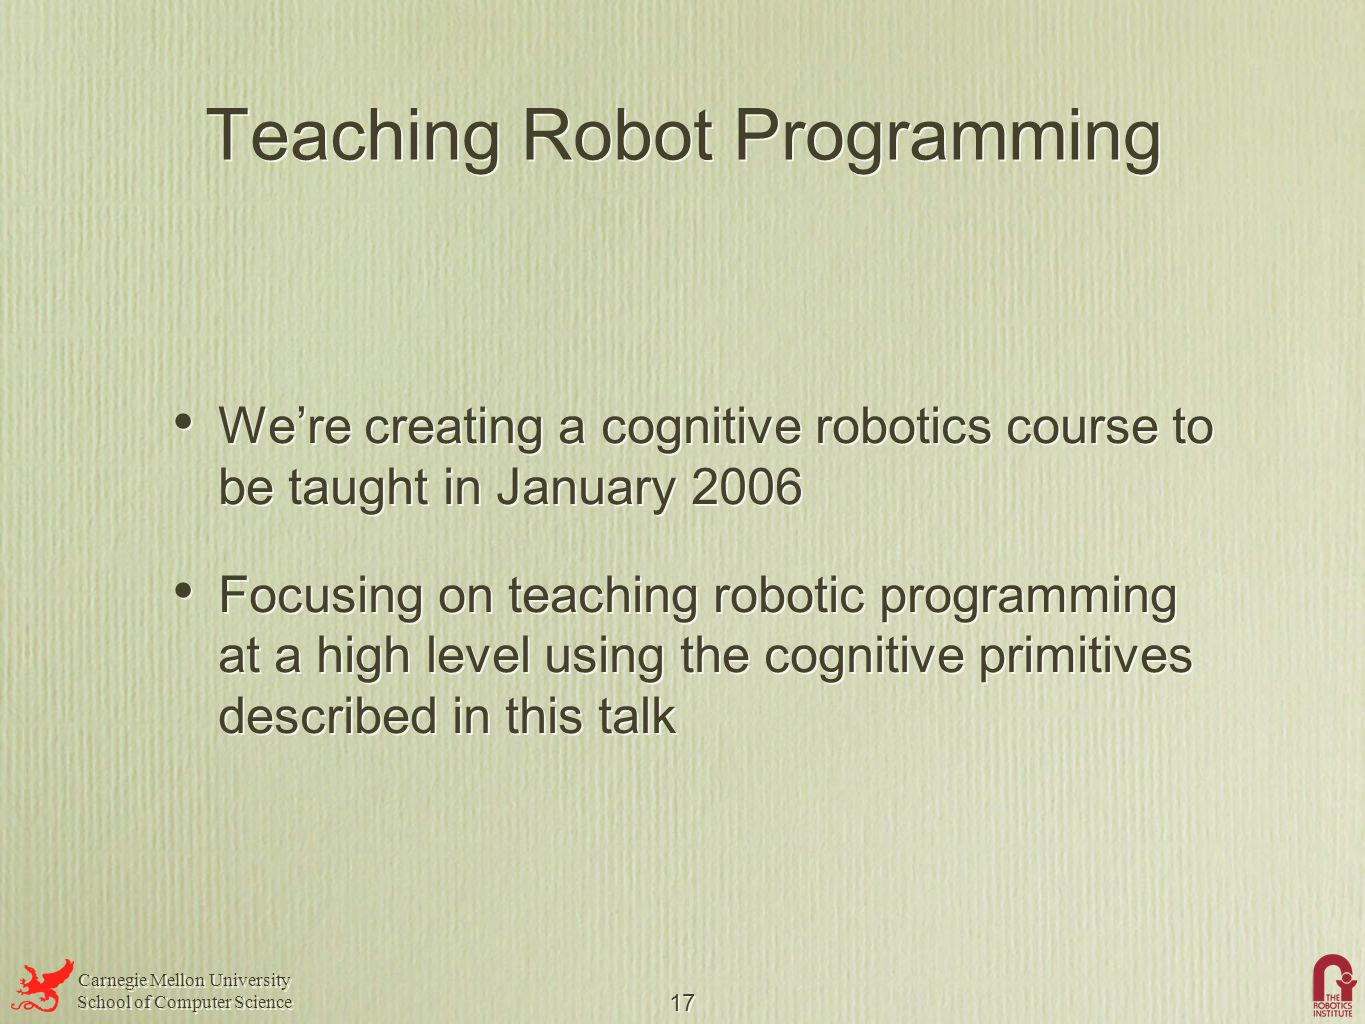 Carnegie Mellon University School of Computer Science Carnegie Mellon University School of Computer Science 17 Teaching Robot Programming We're creating a cognitive robotics course to be taught in January 2006 Focusing on teaching robotic programming at a high level using the cognitive primitives described in this talk We're creating a cognitive robotics course to be taught in January 2006 Focusing on teaching robotic programming at a high level using the cognitive primitives described in this talk